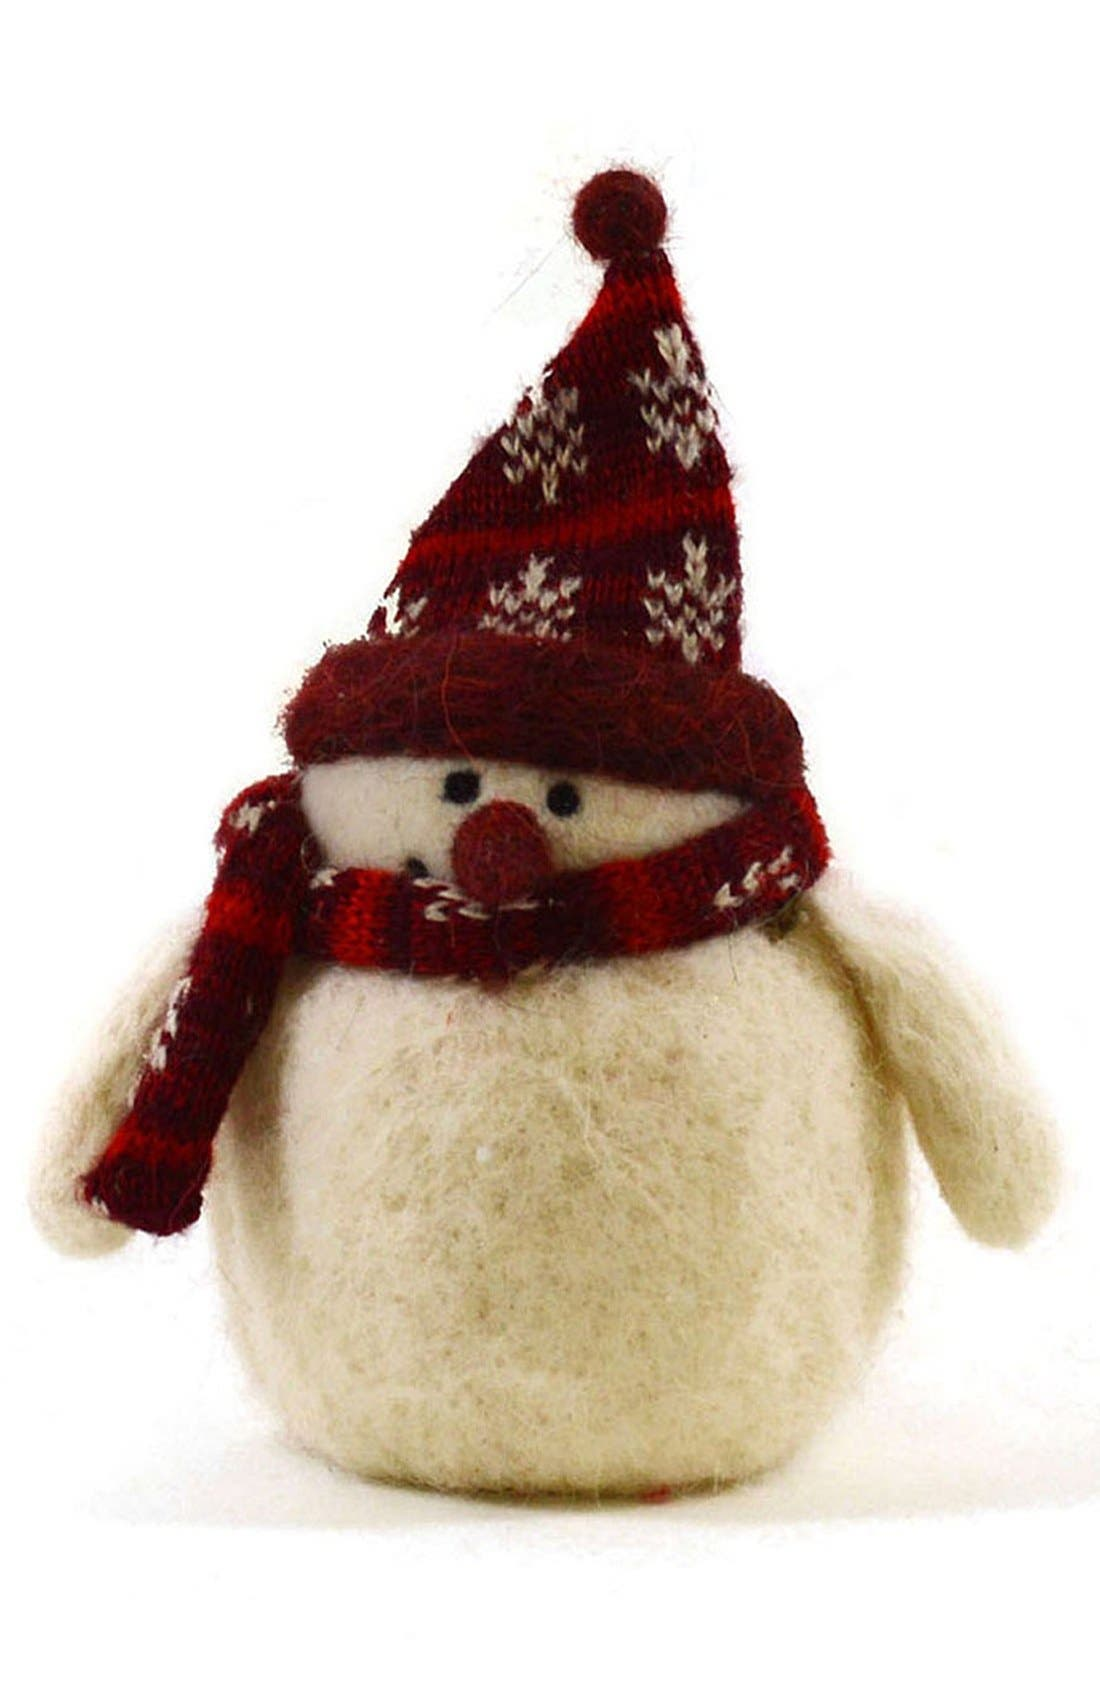 Alternate Image 1 Selected - Shea's Wildflower 'Hadley the Snowman' Wool Figurine